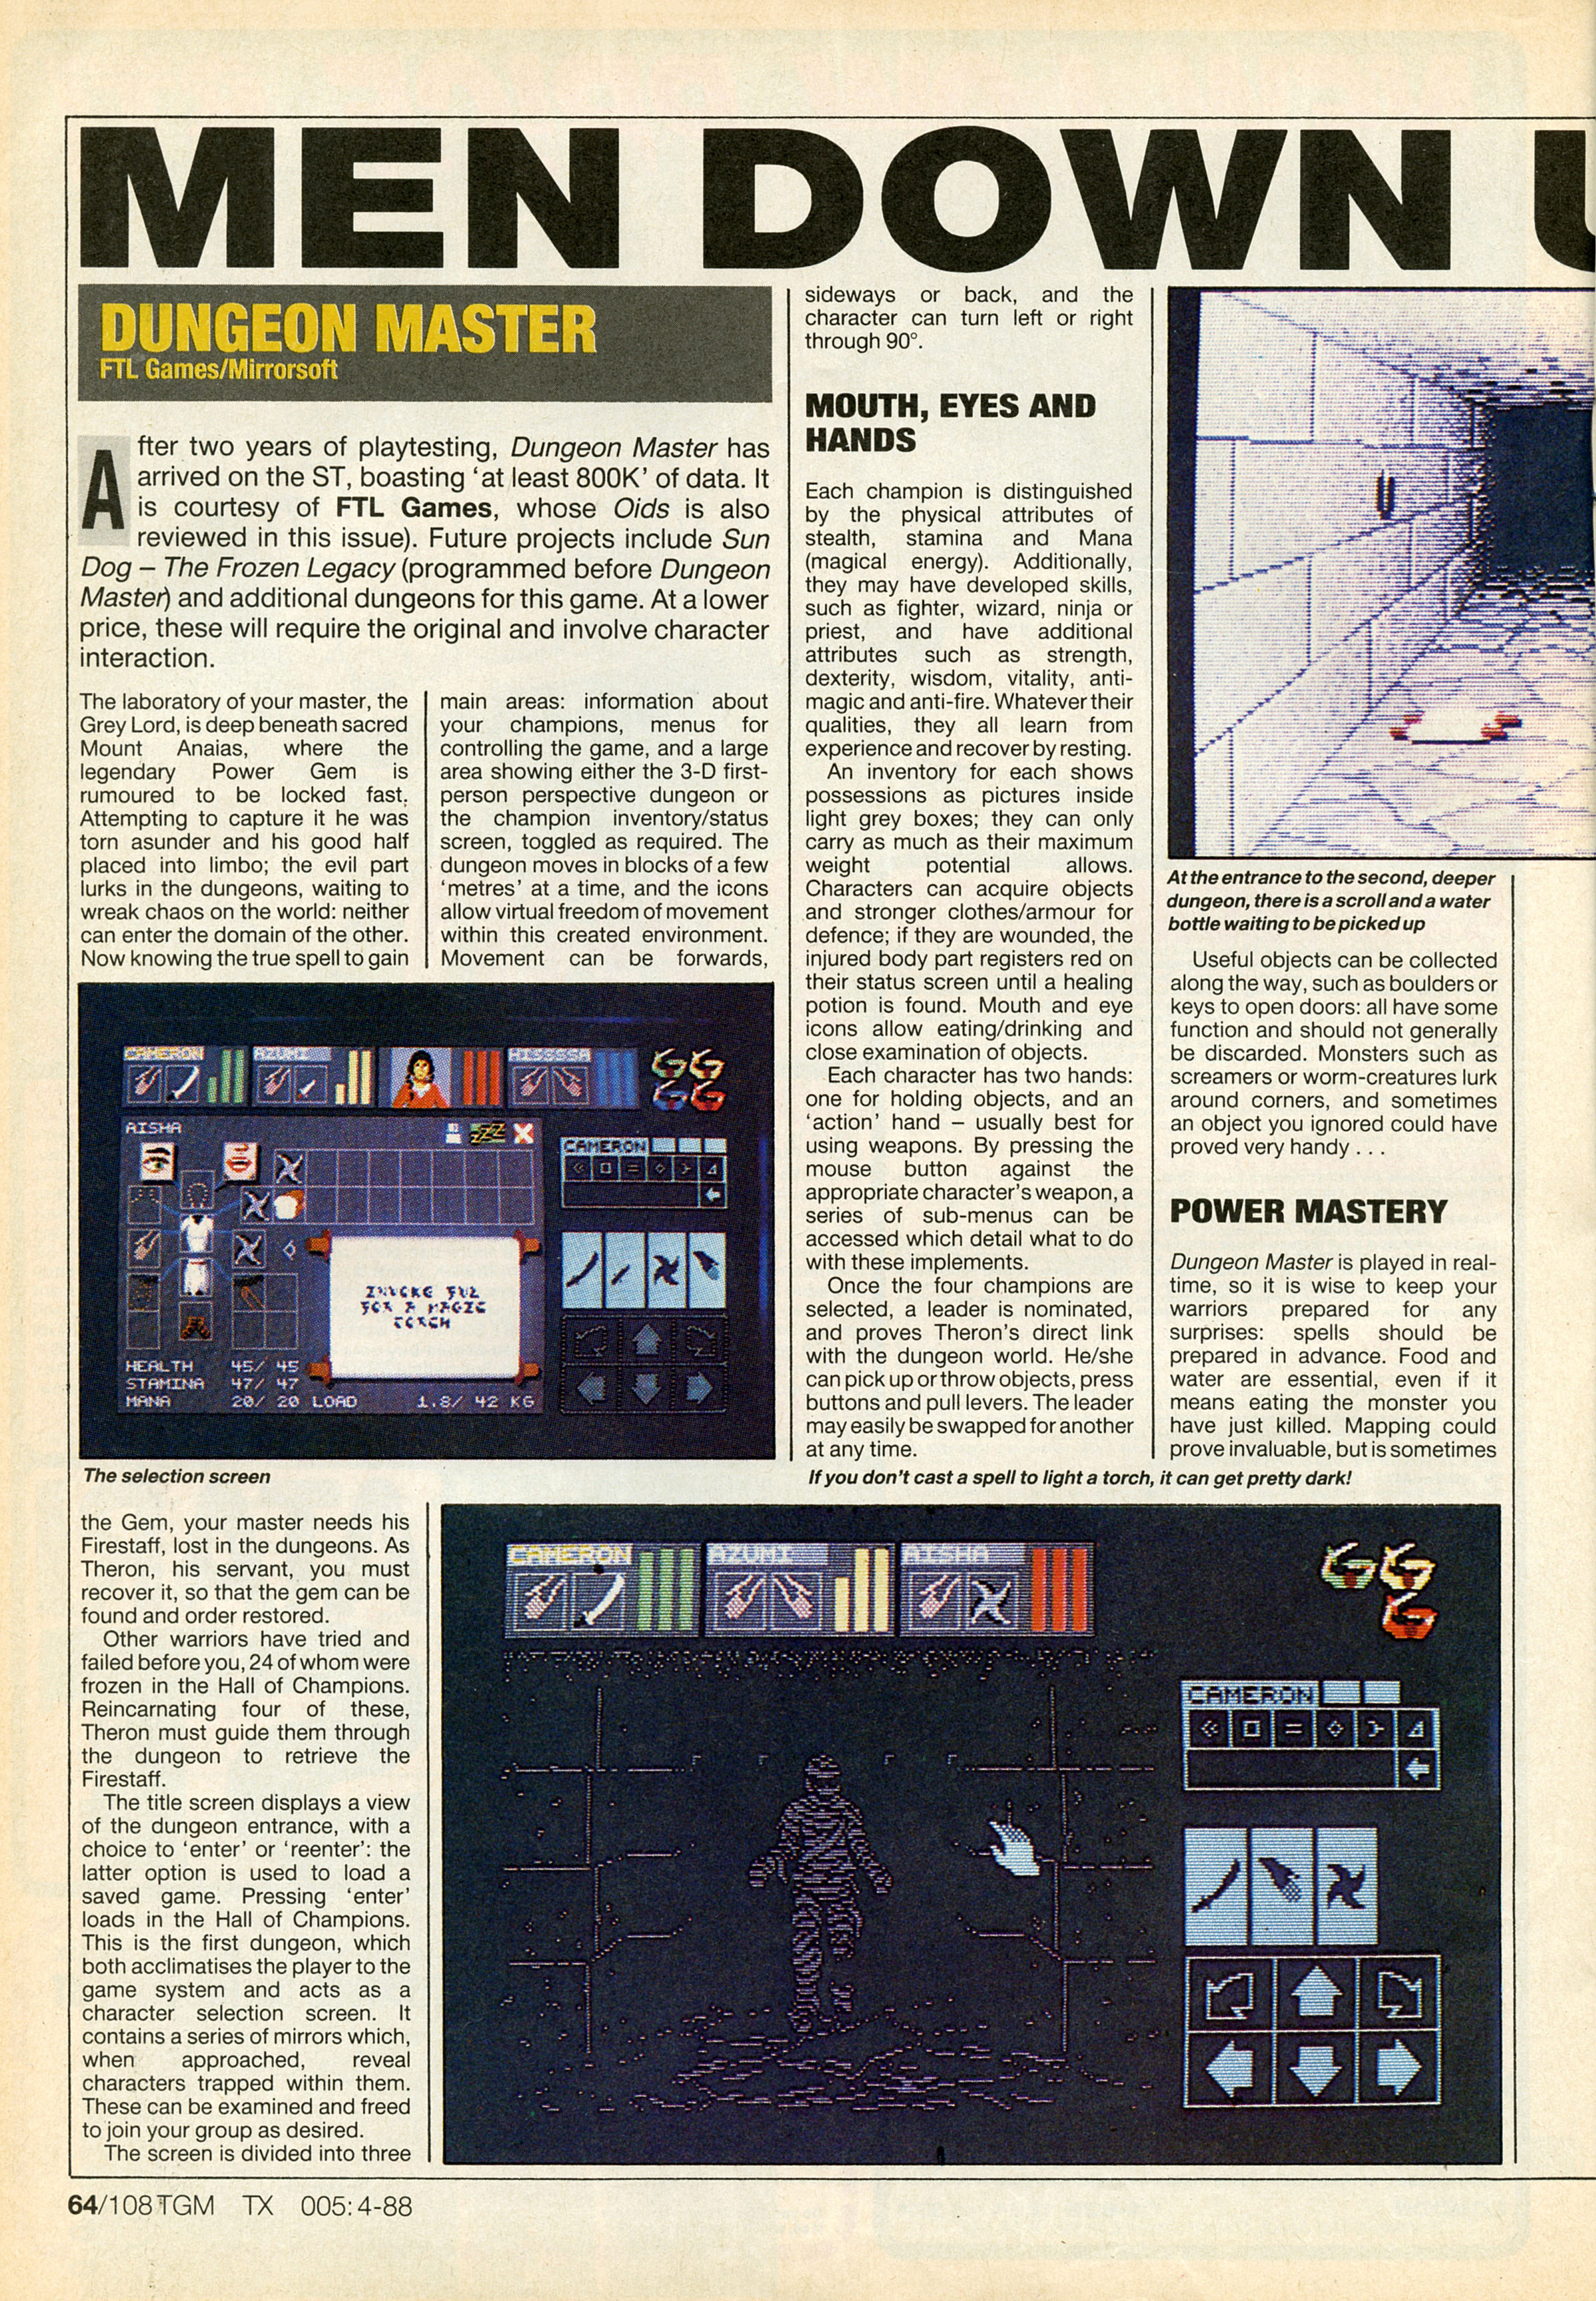 Dungeon Master for Atari ST Review published in British magazine 'The Game Machine', Issue #5, April 1988, Page 64